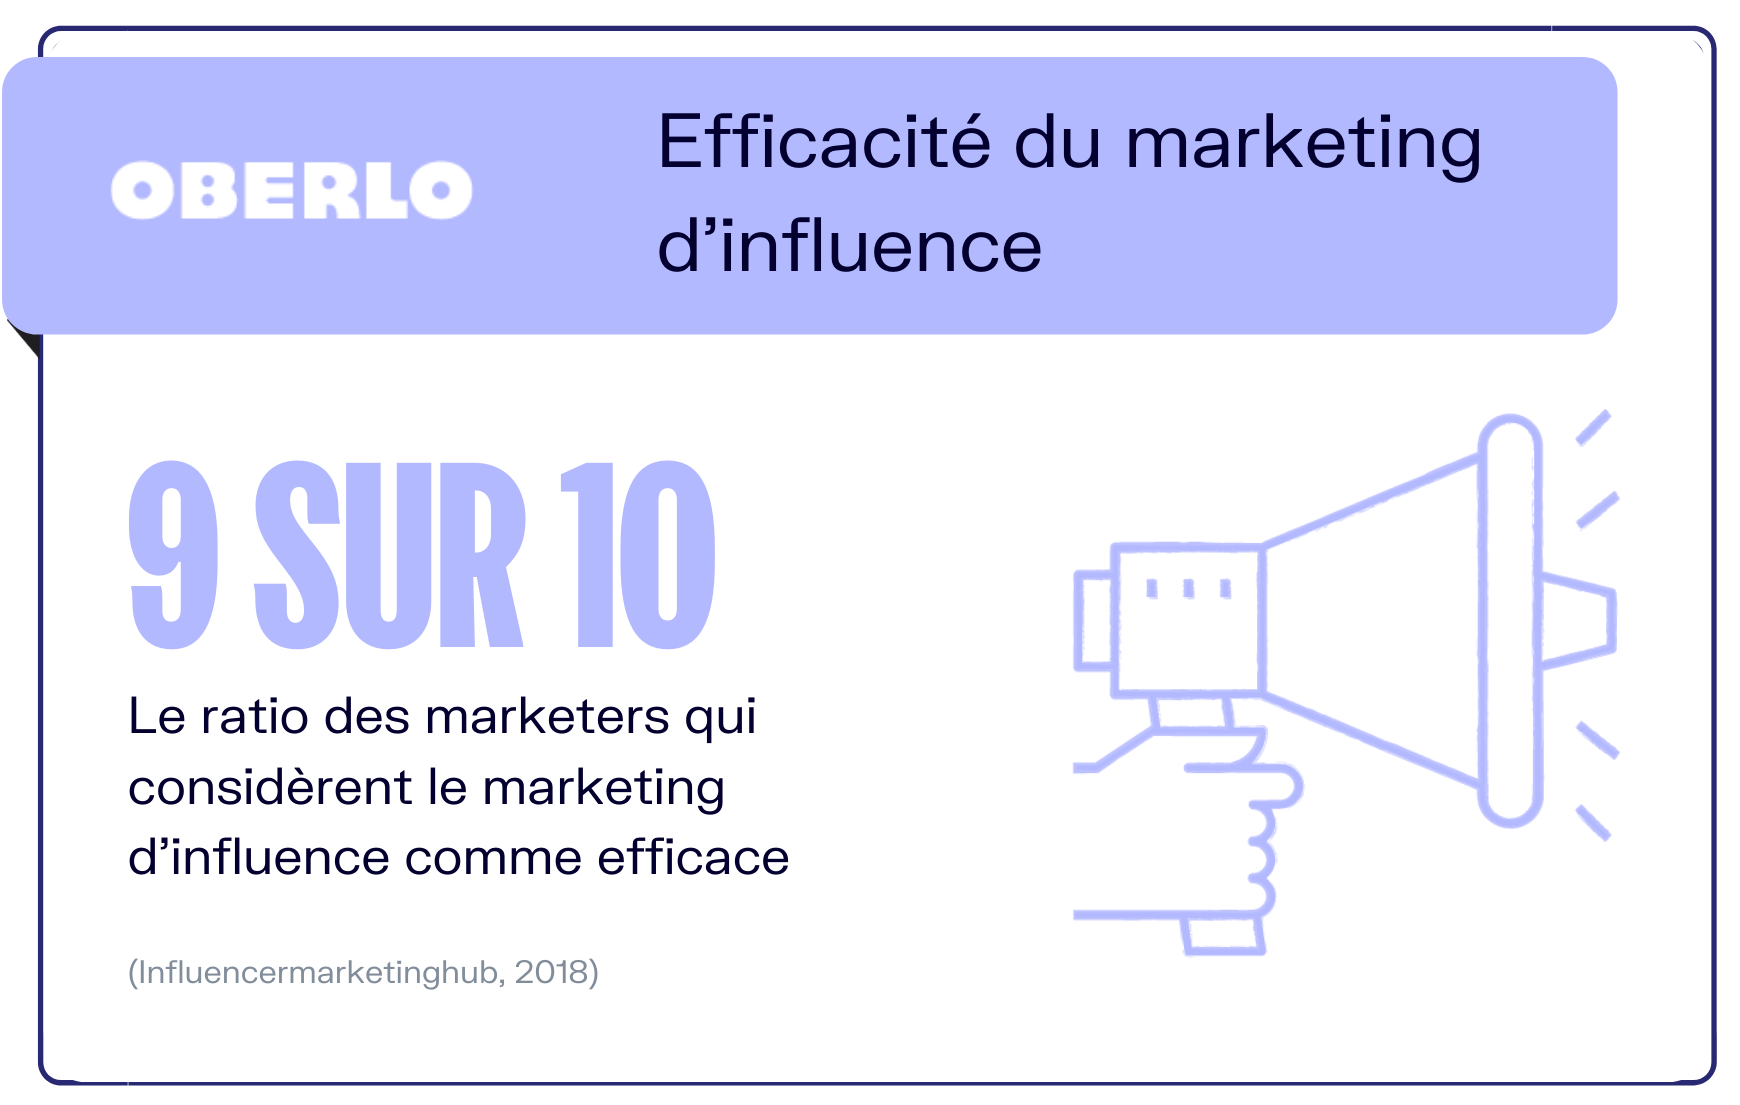 statistiques marketing influence